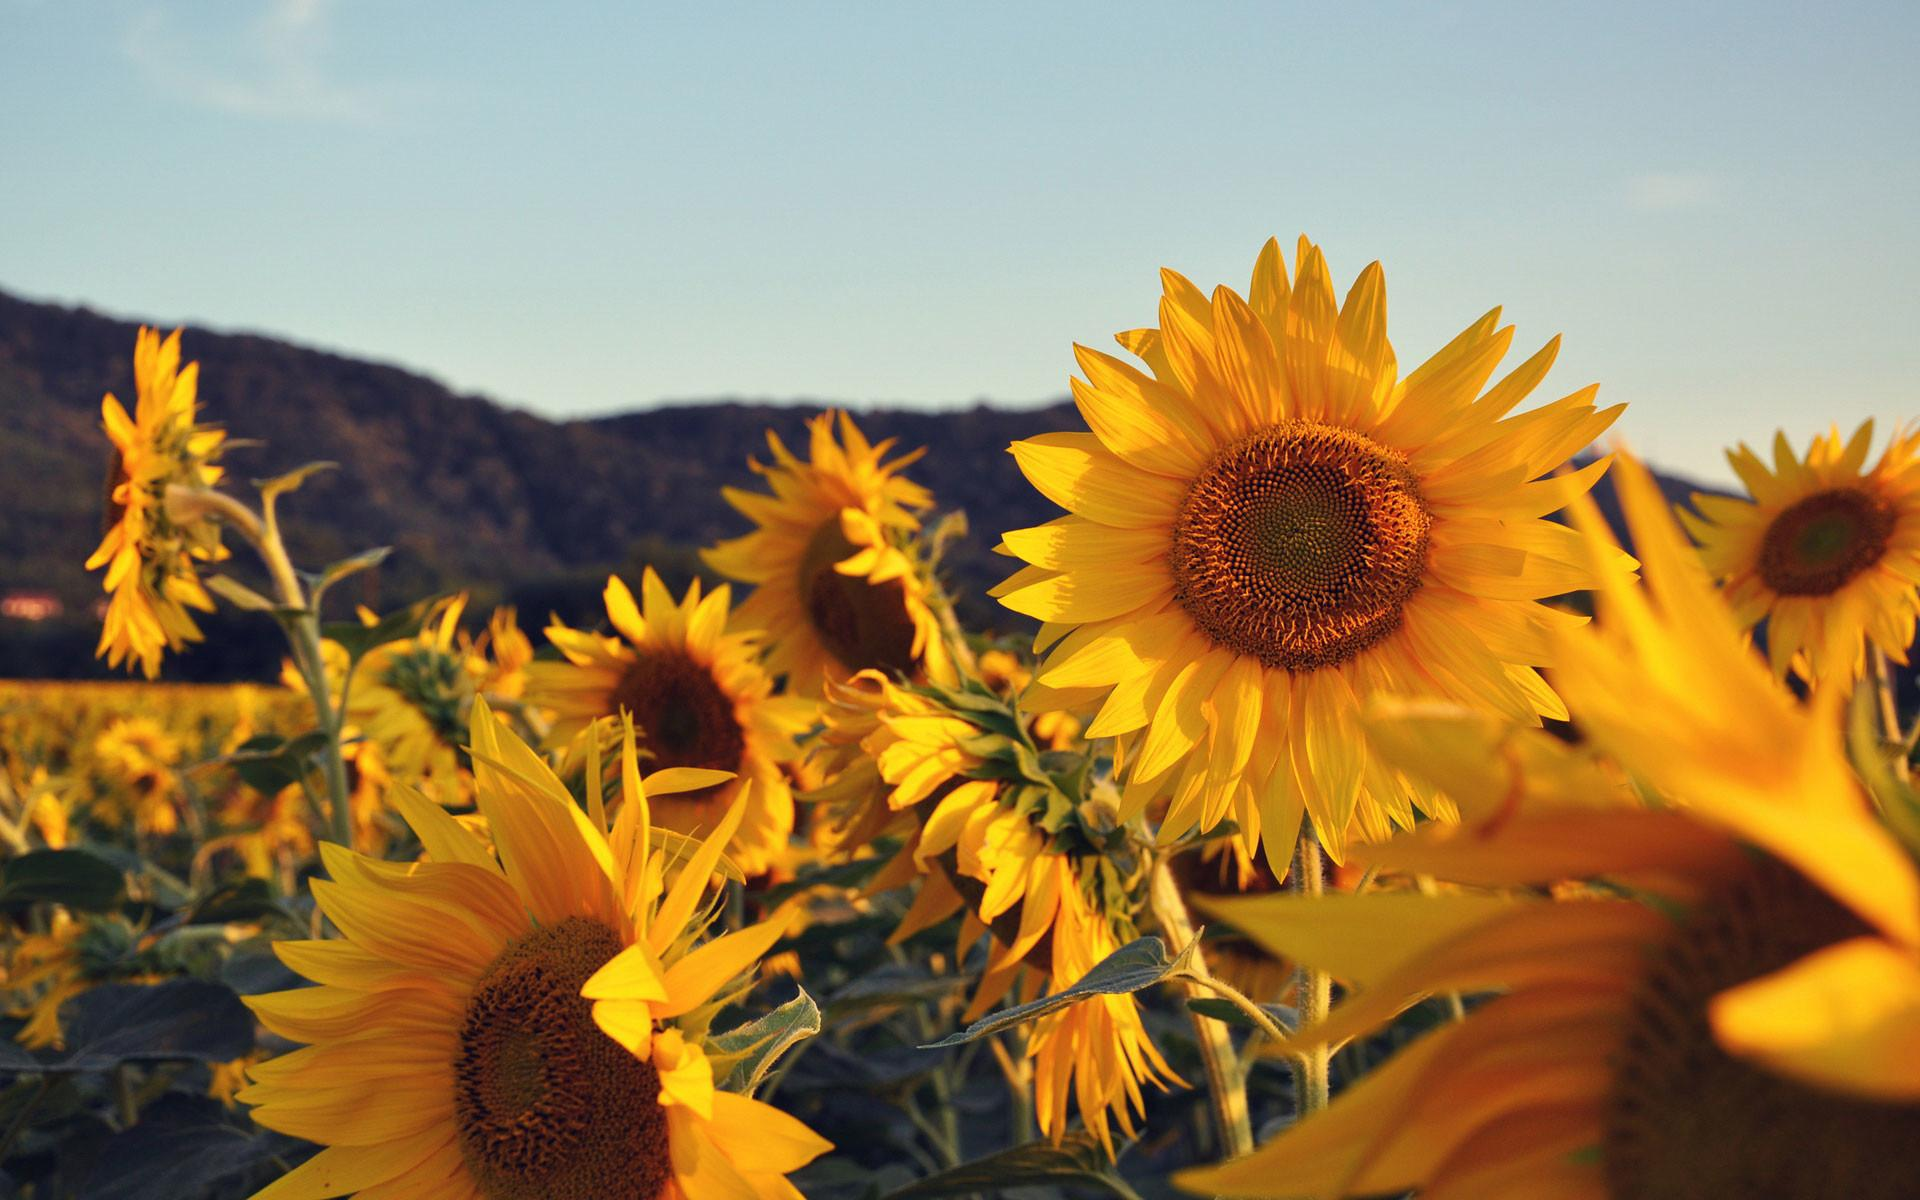 Sunflowers Hd Wallpapers Sunflowers